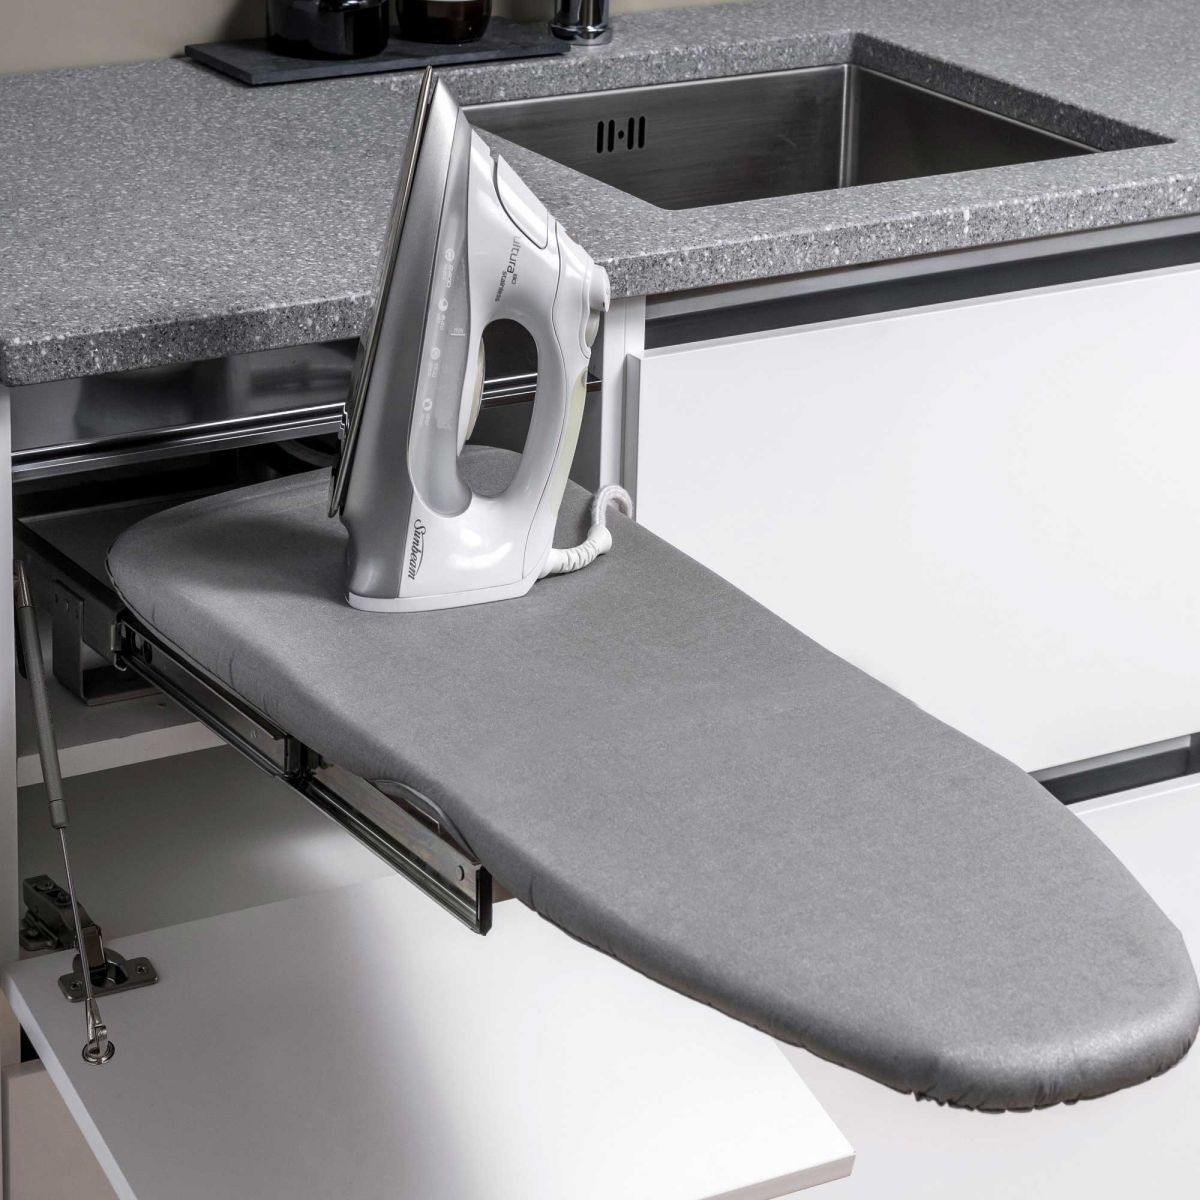 Pull-out Ironing Boad